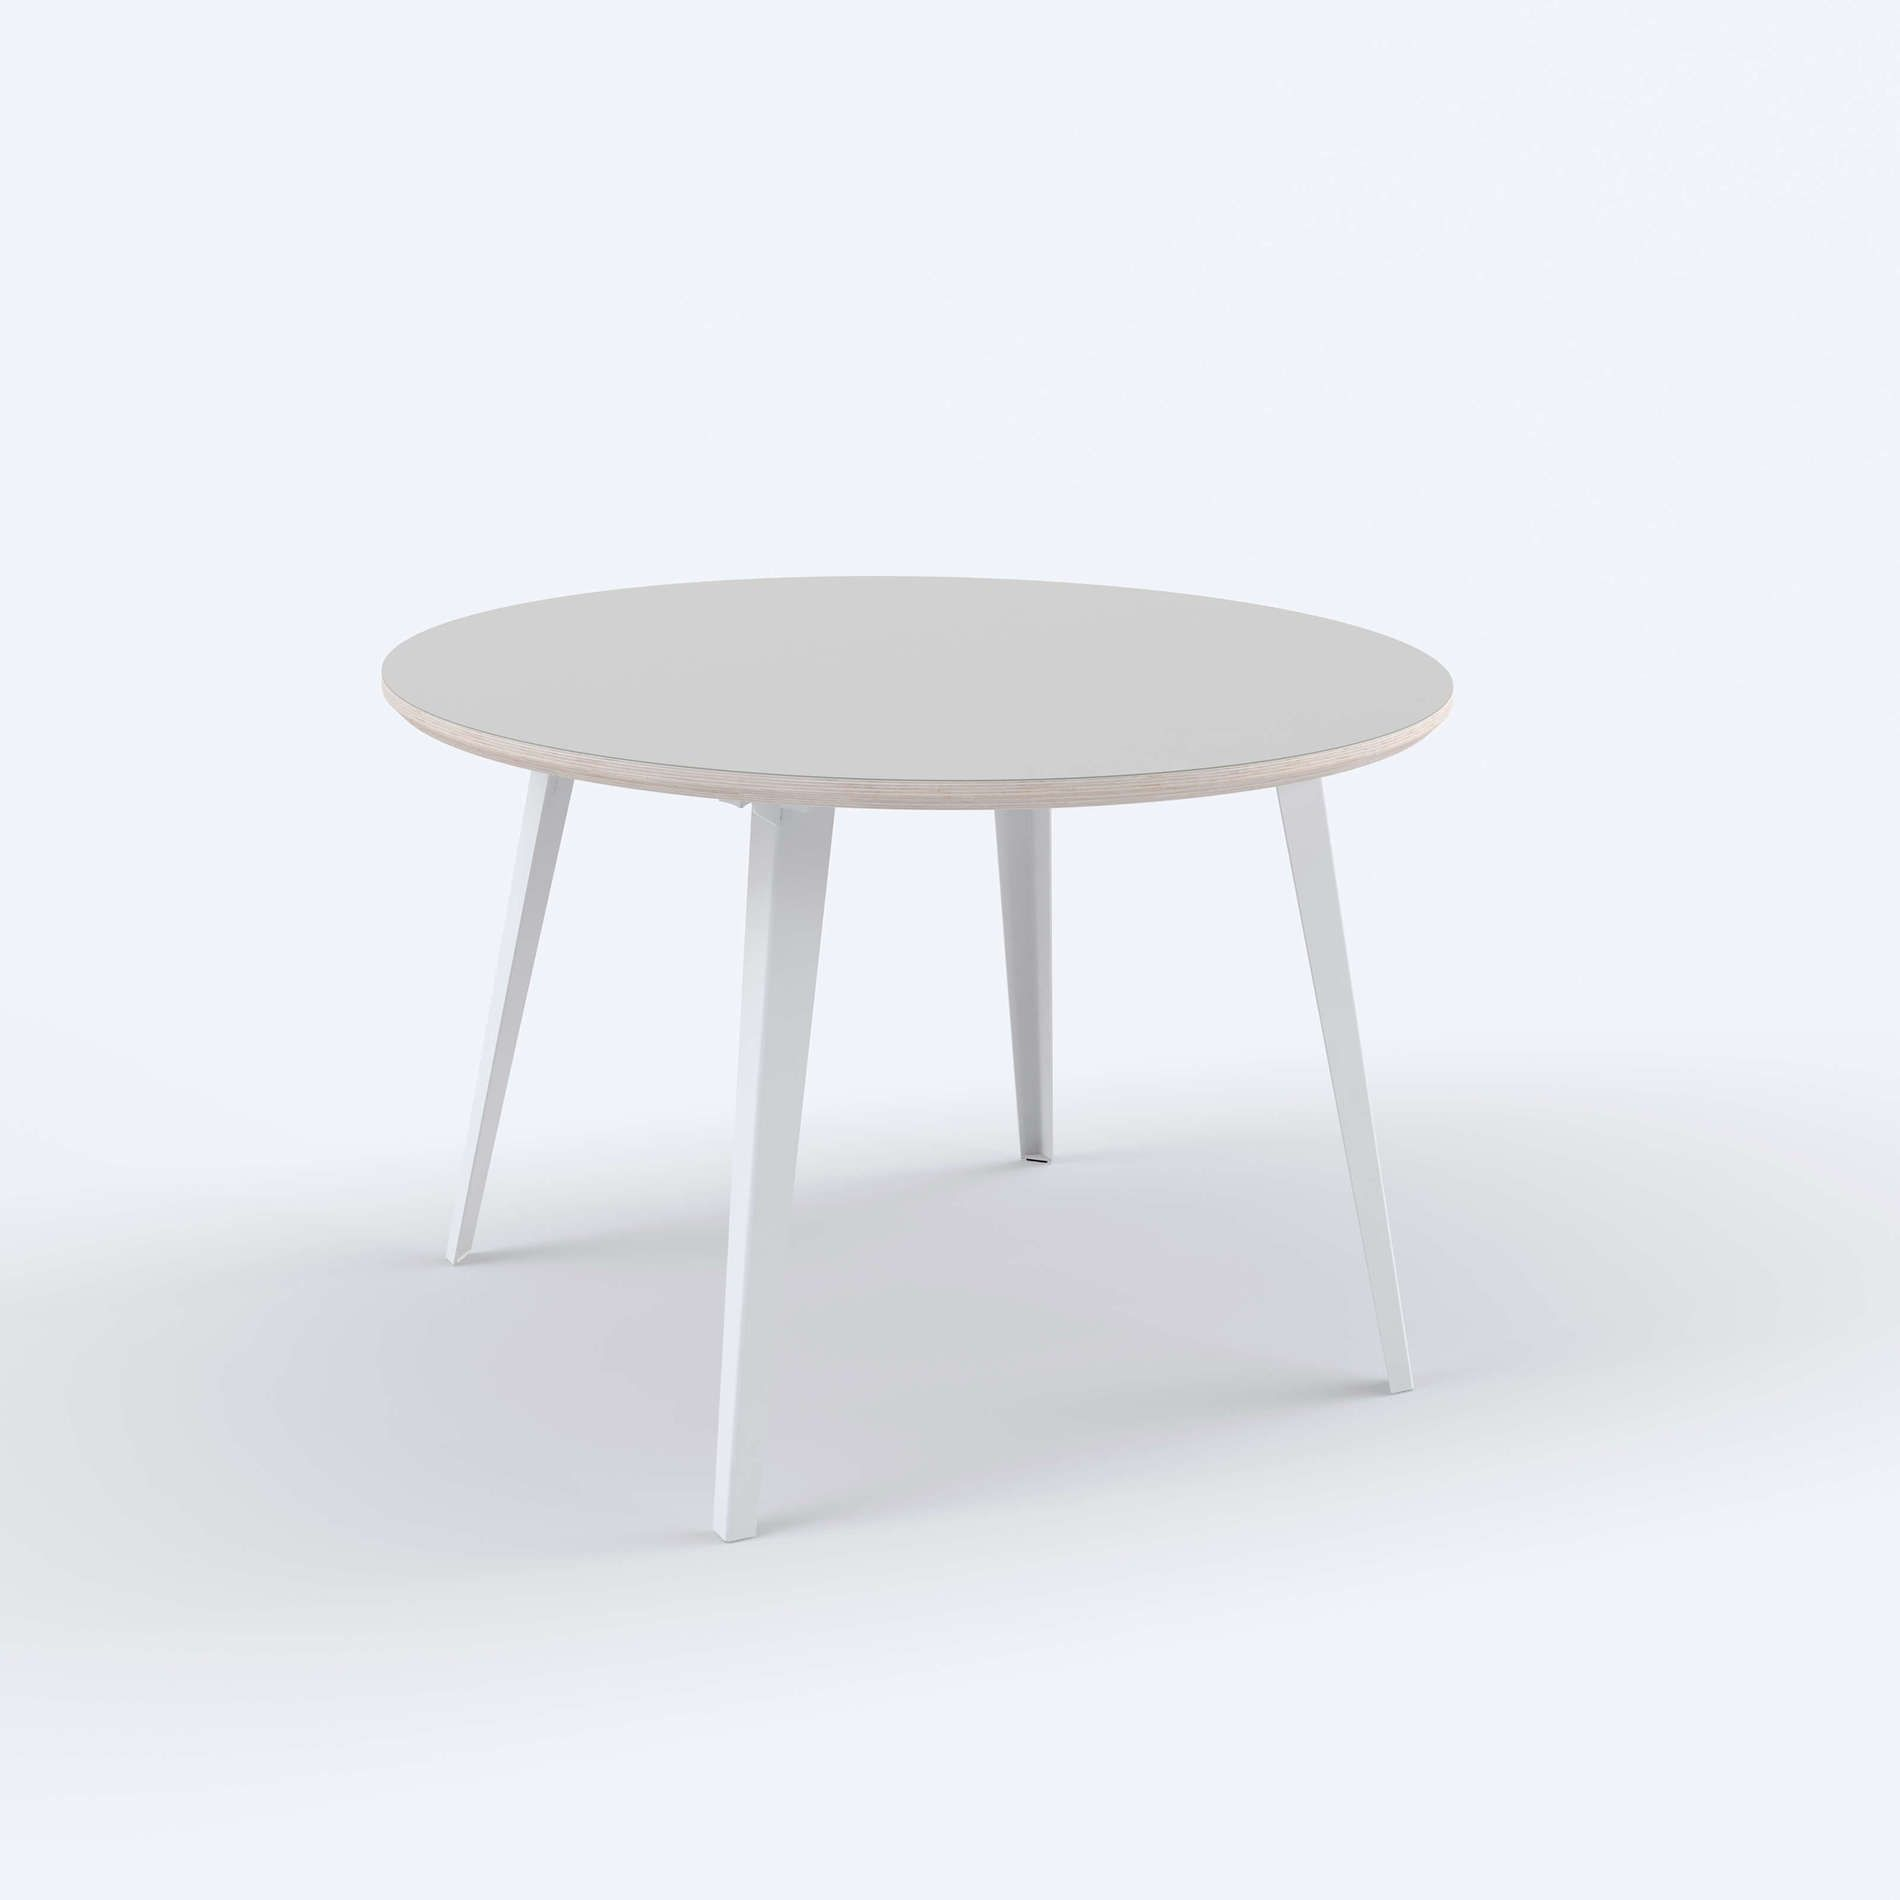 The Table Floyd Floyd 46 Round In Fog Or Blush With Images